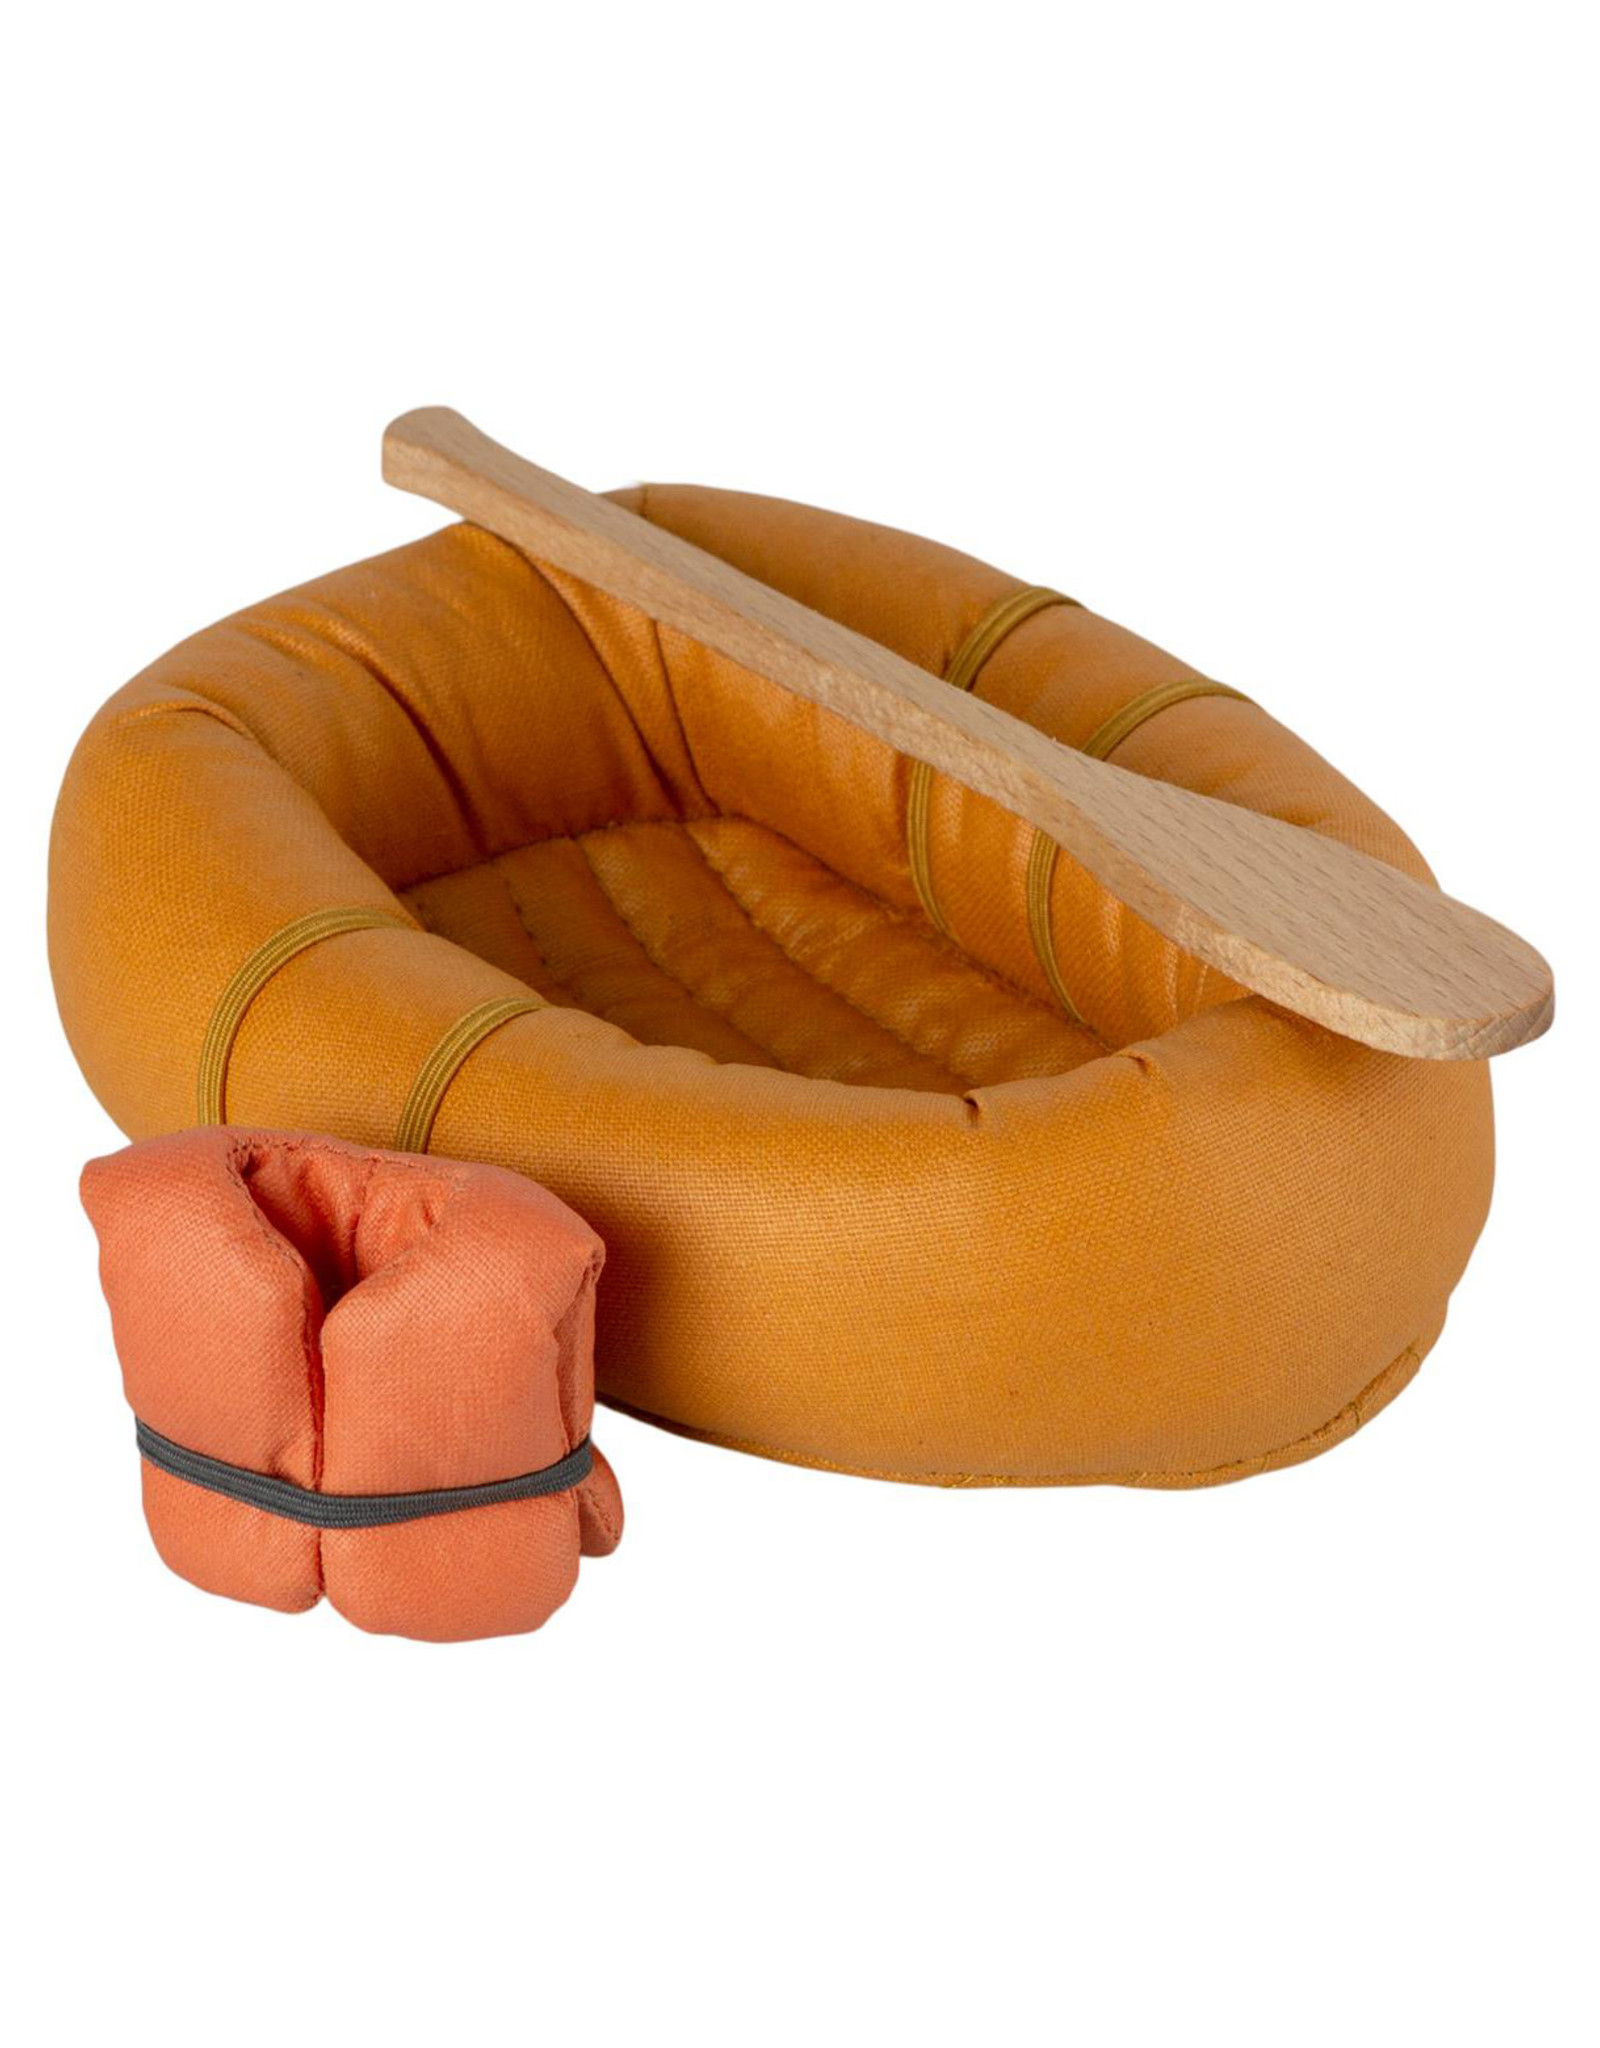 Maileg Mouse Rubber Boat - Dusty Yellow